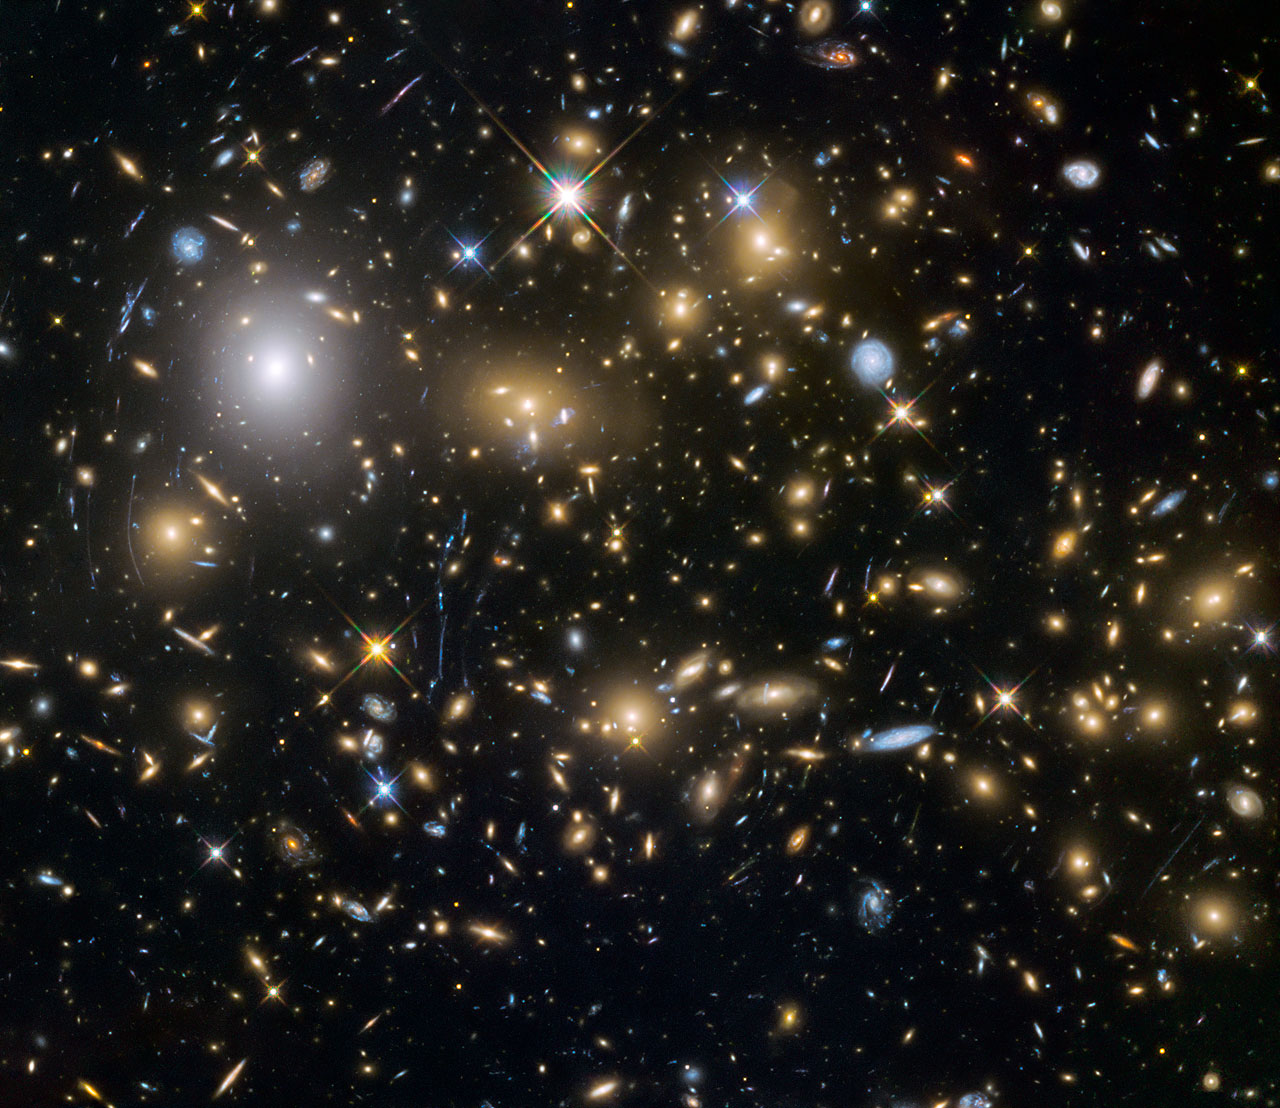 Hubble Spies Big Bang Frontiers NASA - Amazing videos hubble telescopes yet